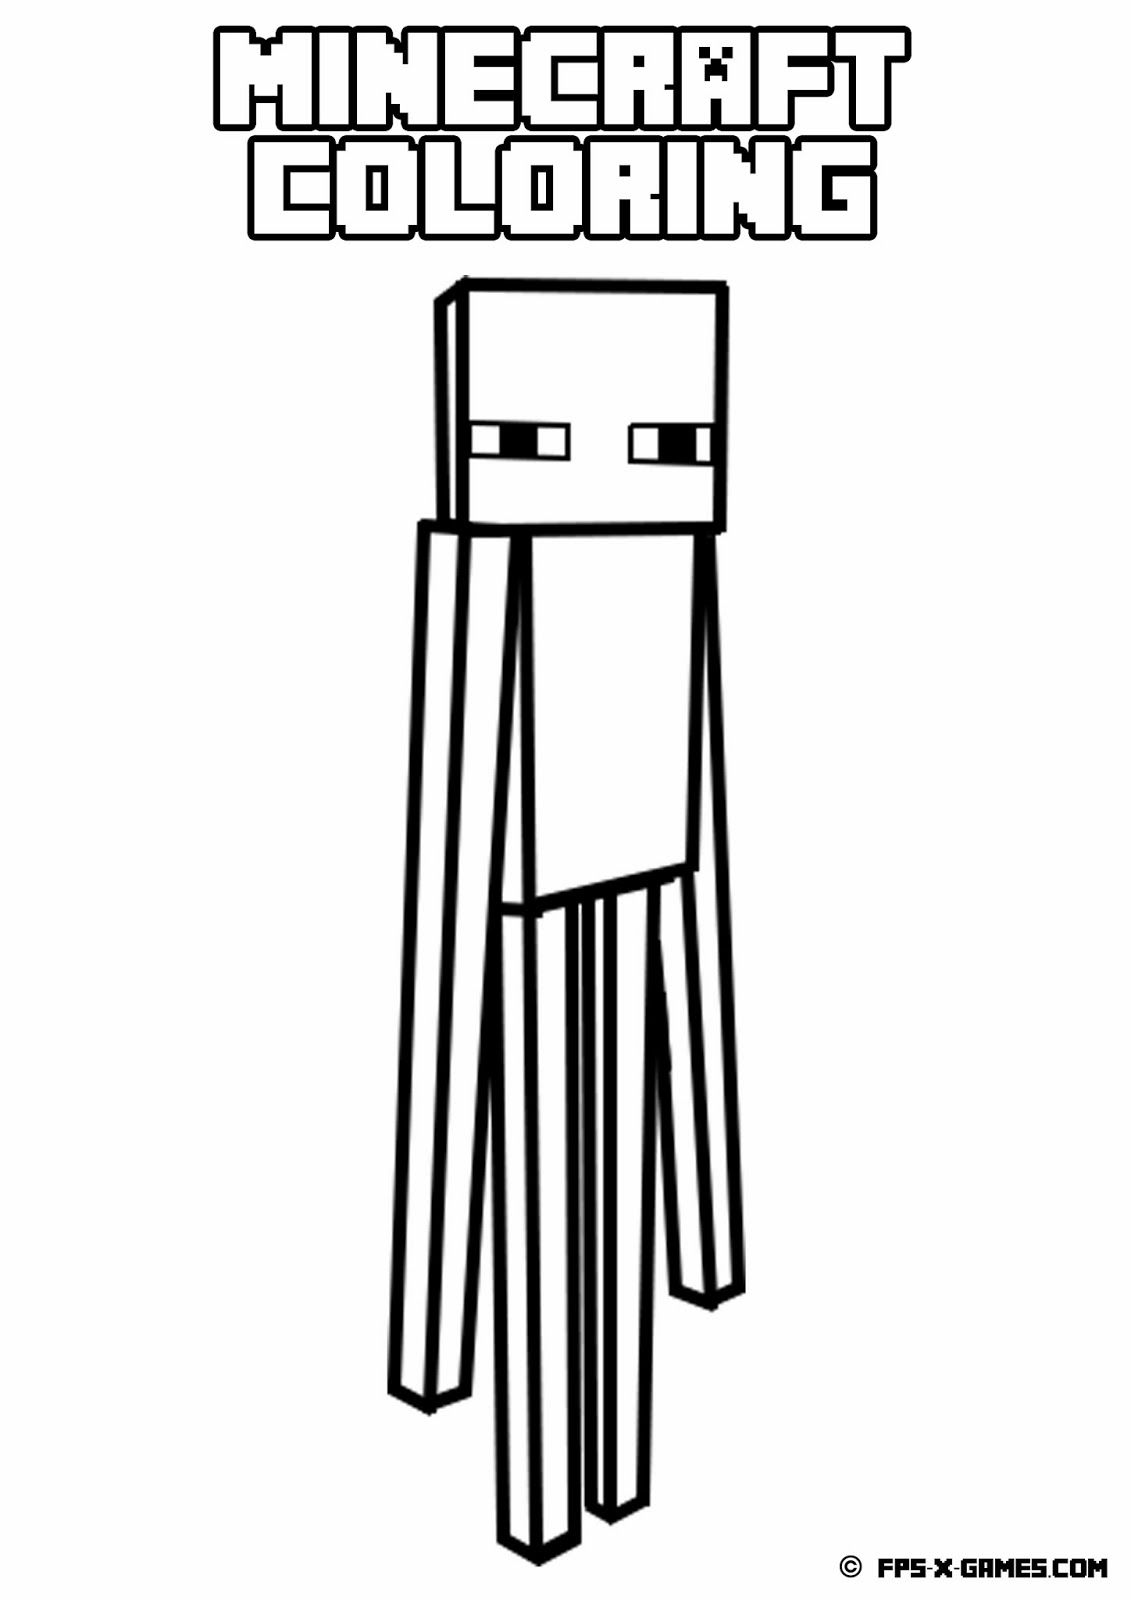 Minecraft Coloring Pages Free Large Images Minecraft Coloring Pages Coloring Pages For Kids Easy Coloring Pages